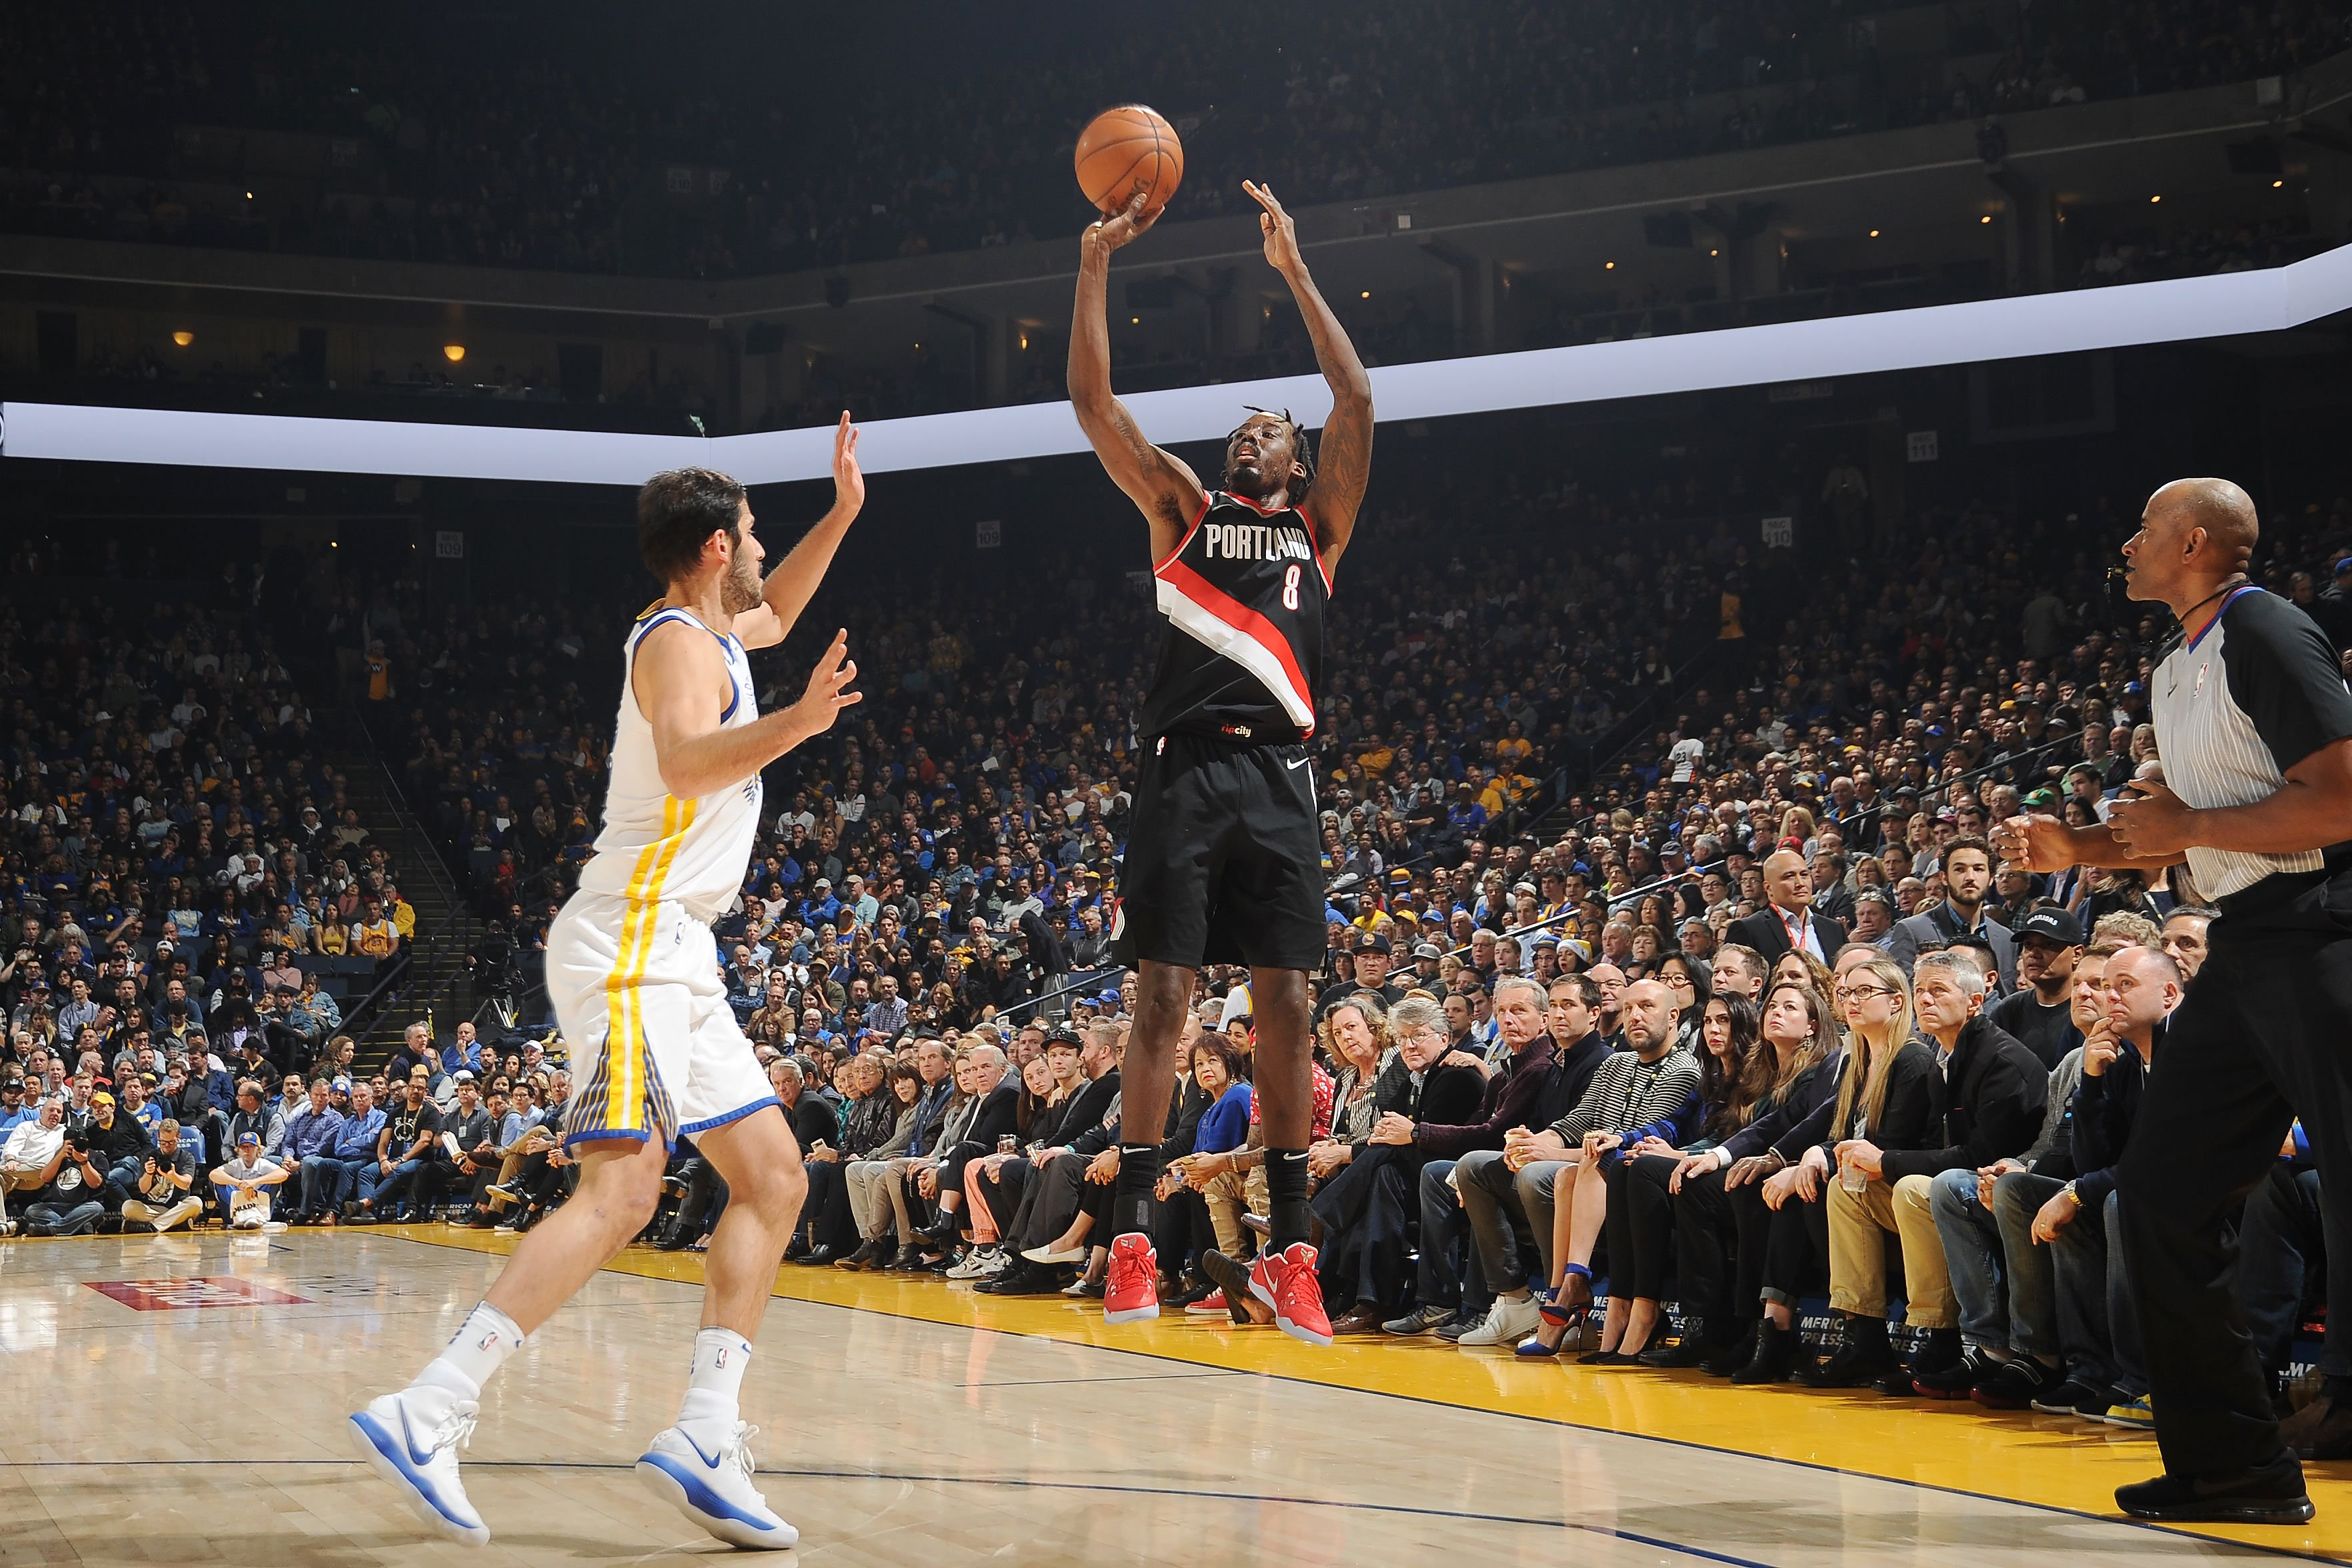 NBA: Aminu Hits Double Double in Portland Trail Blazers' Loss